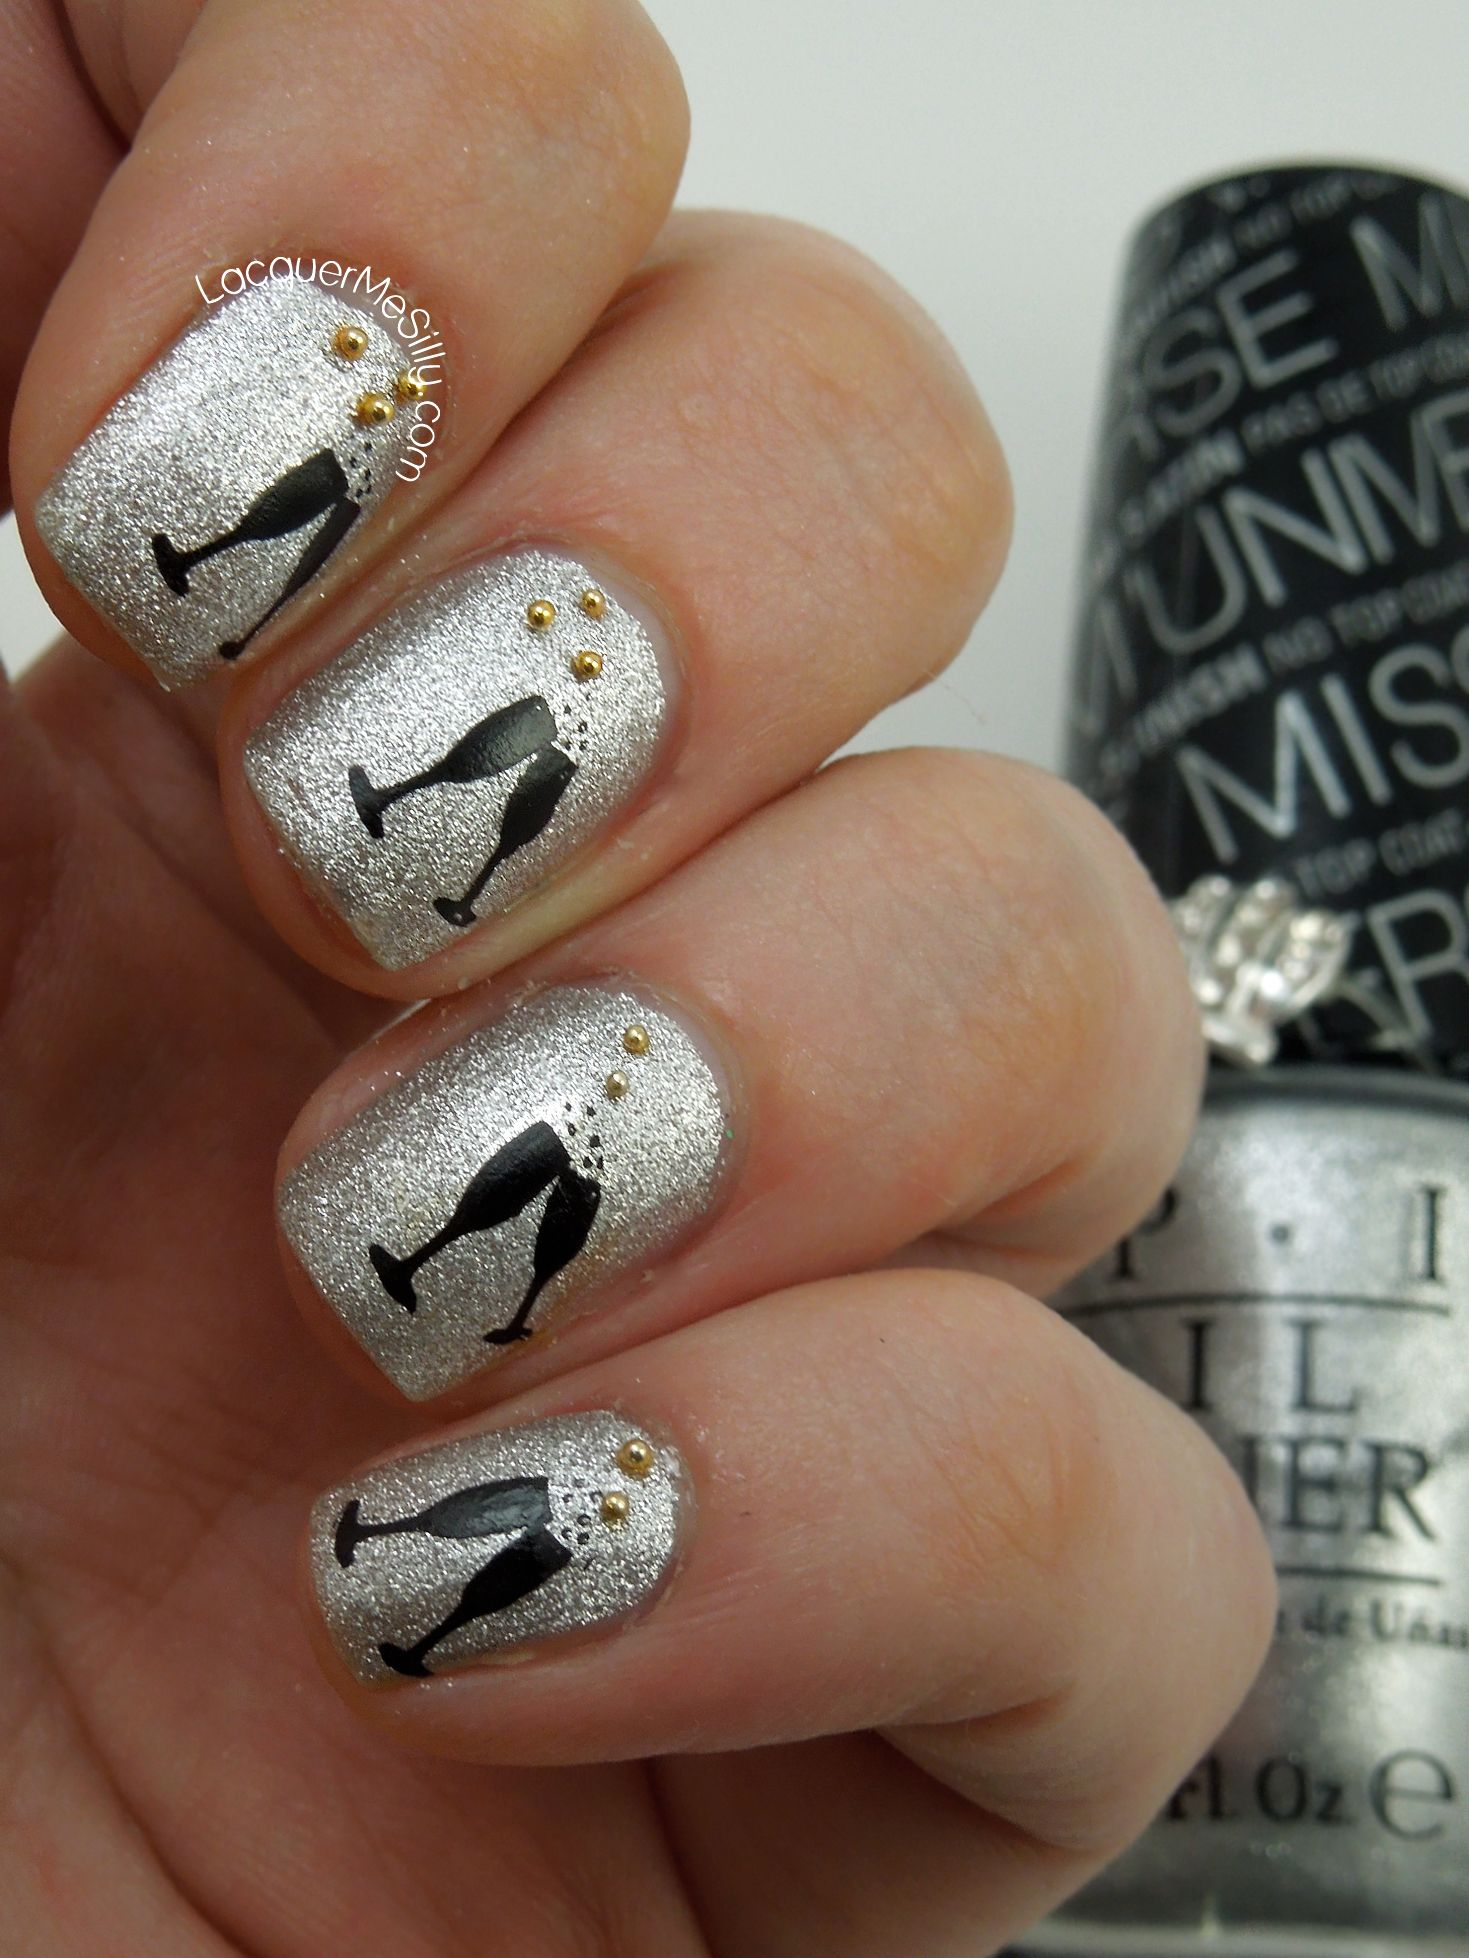 Happy New Year! | Nails | Pinterest | Makeup, Xmas nails and Fun nails